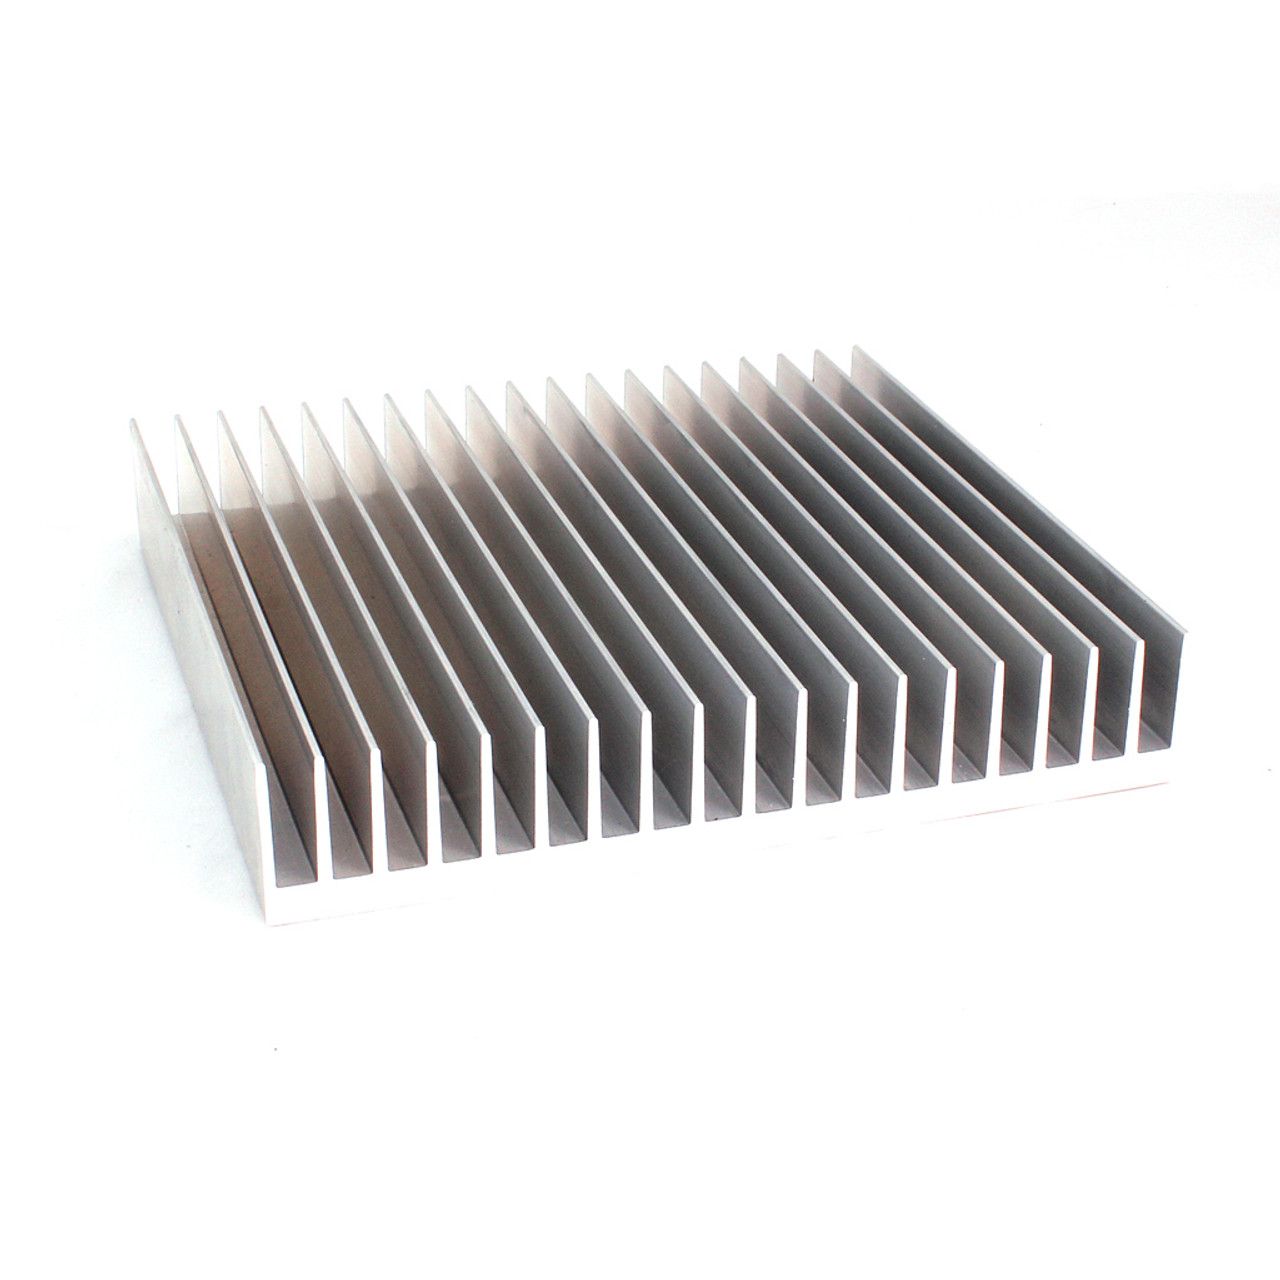 Machined Reference Design 2.0 Heatsink